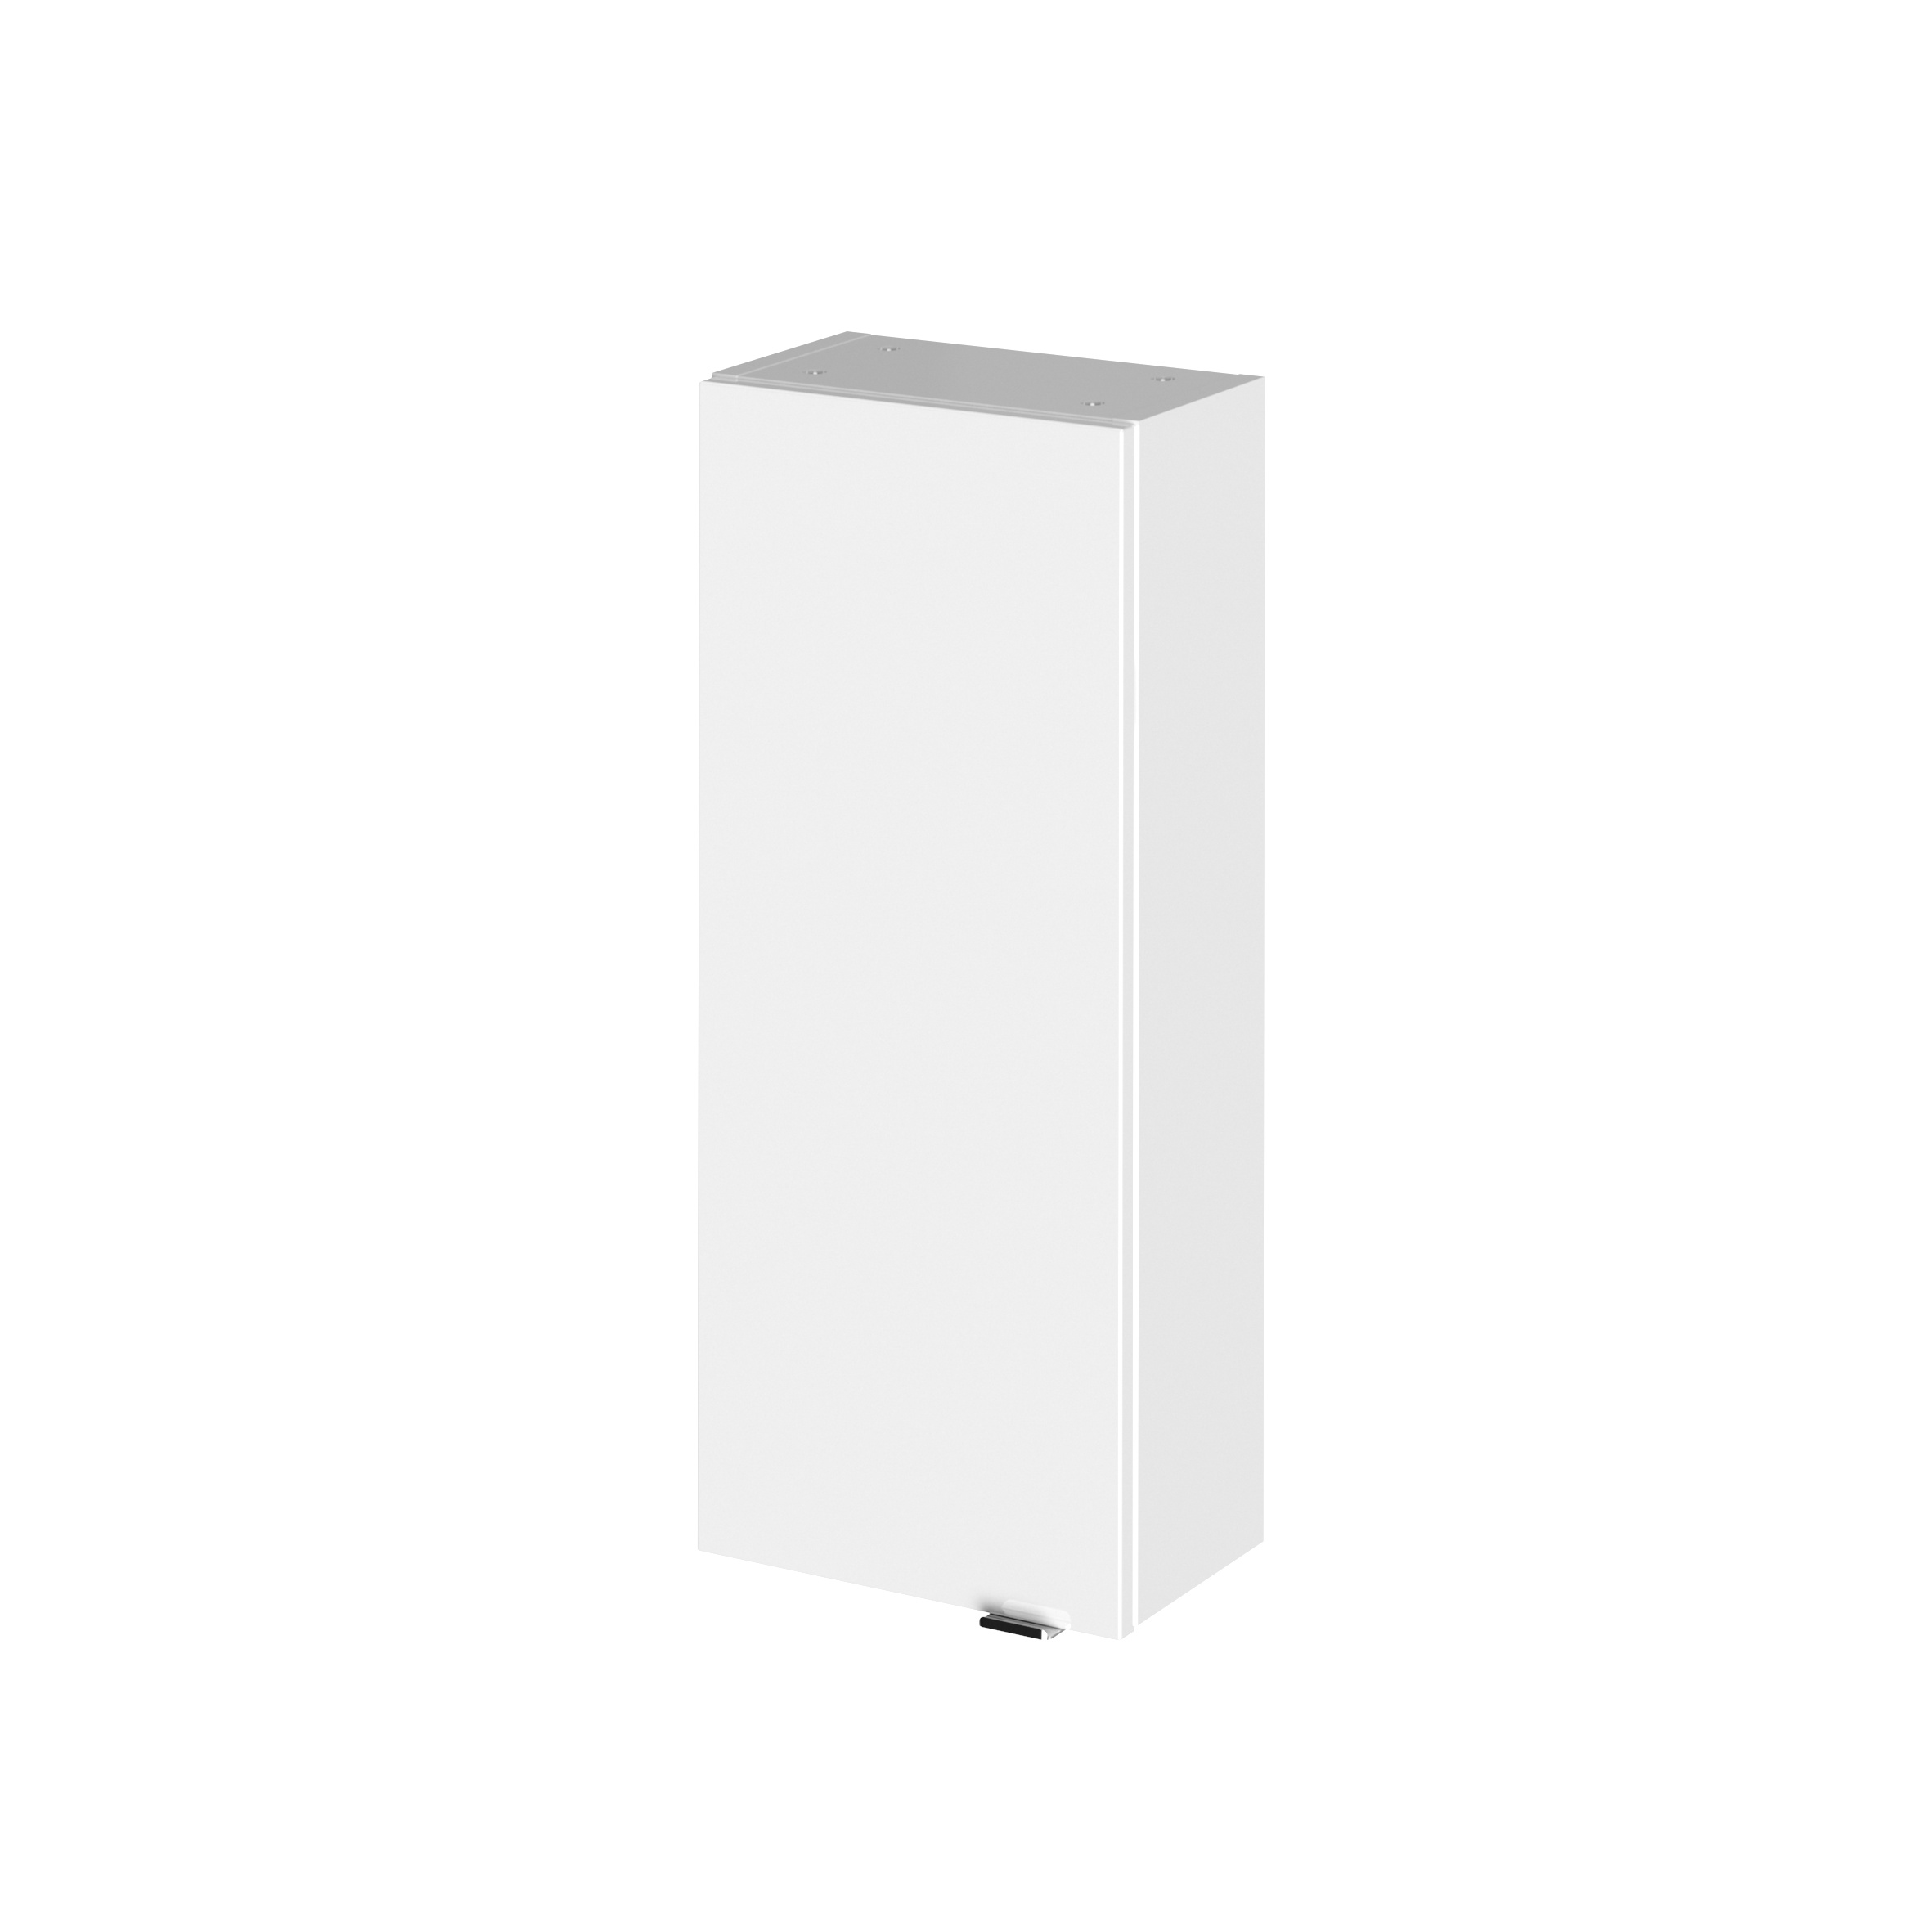 300mm Wall Unit - White - Hudson Reed